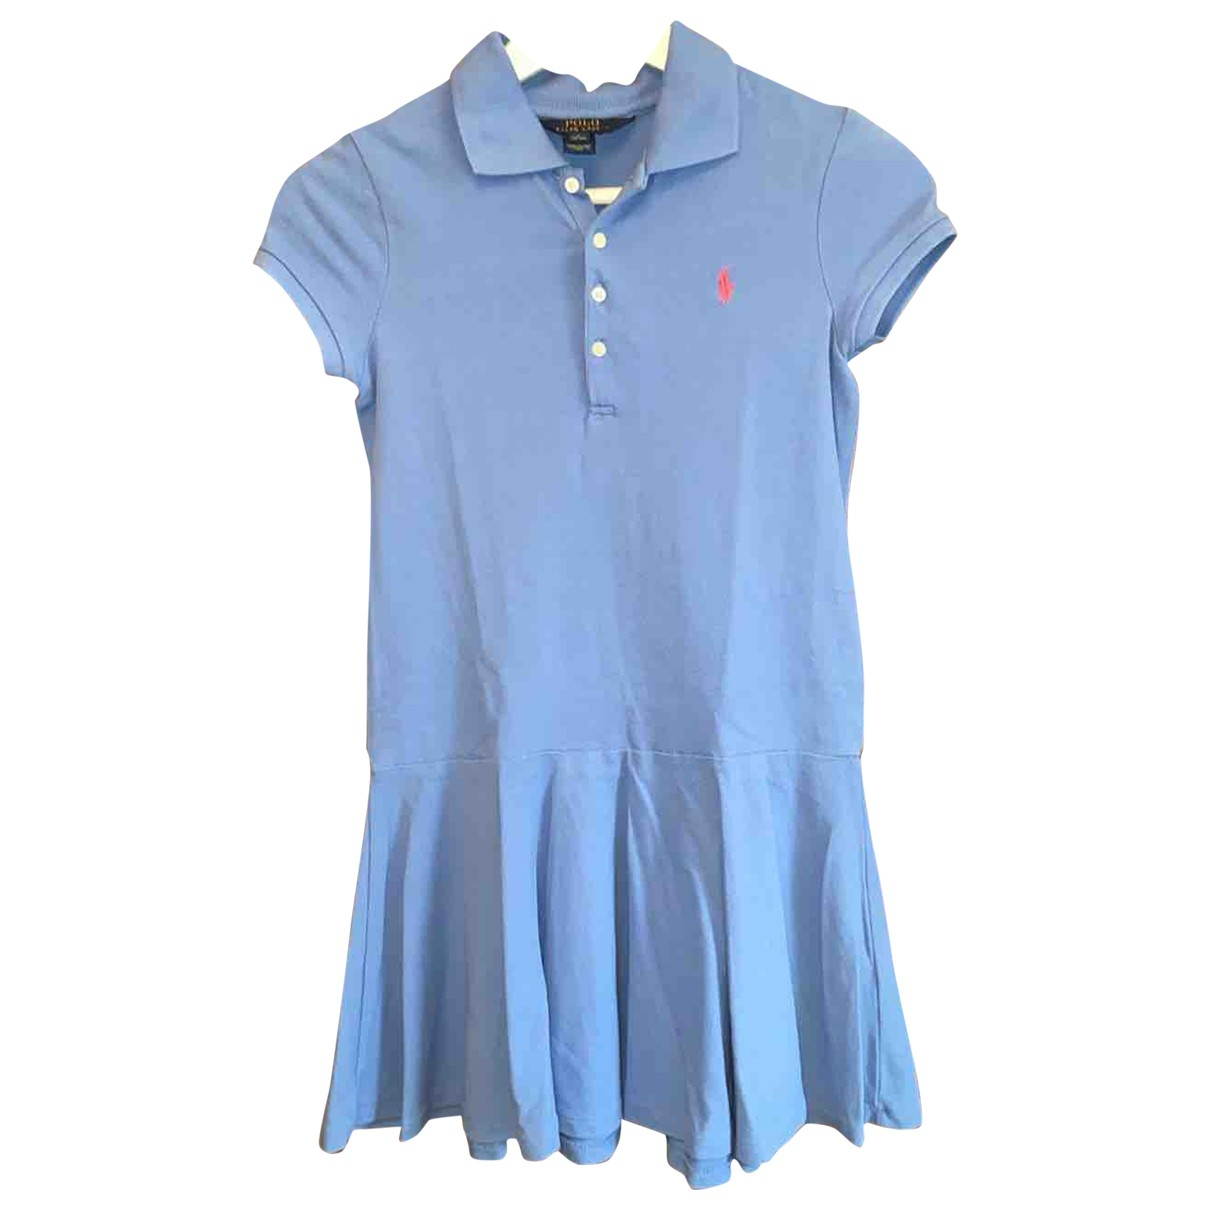 Polo Ralph Lauren \N Blue Cotton dress for Kids 14 years - S FR